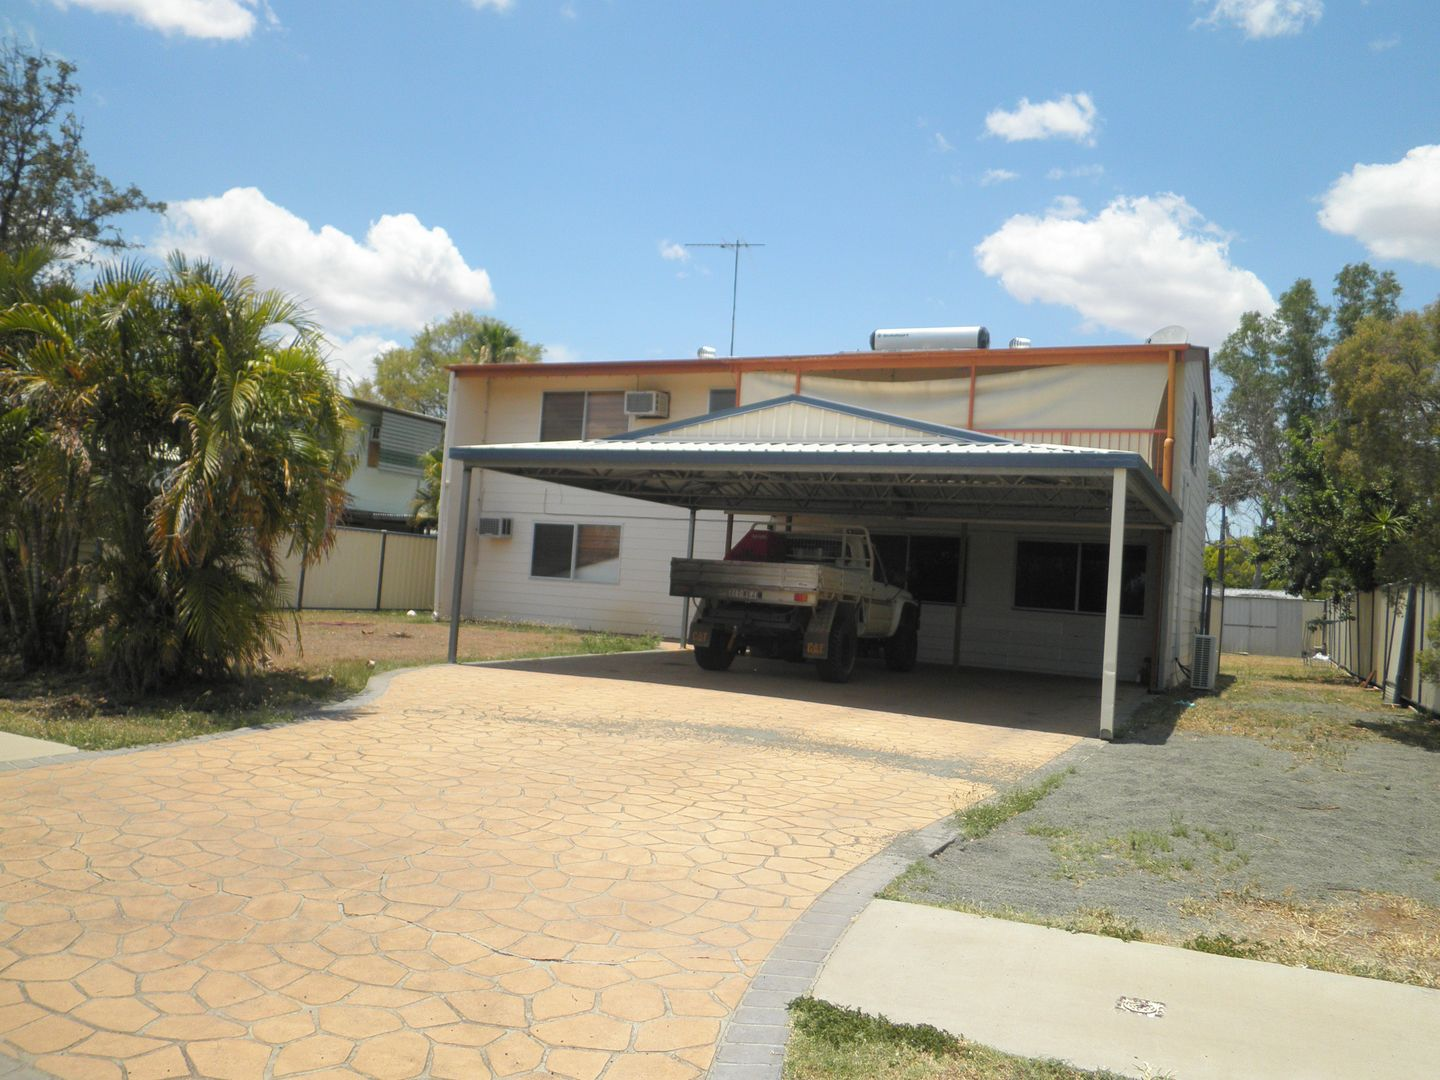 No  69 Bauman Way, Blackwater QLD 4717 - House For Sale